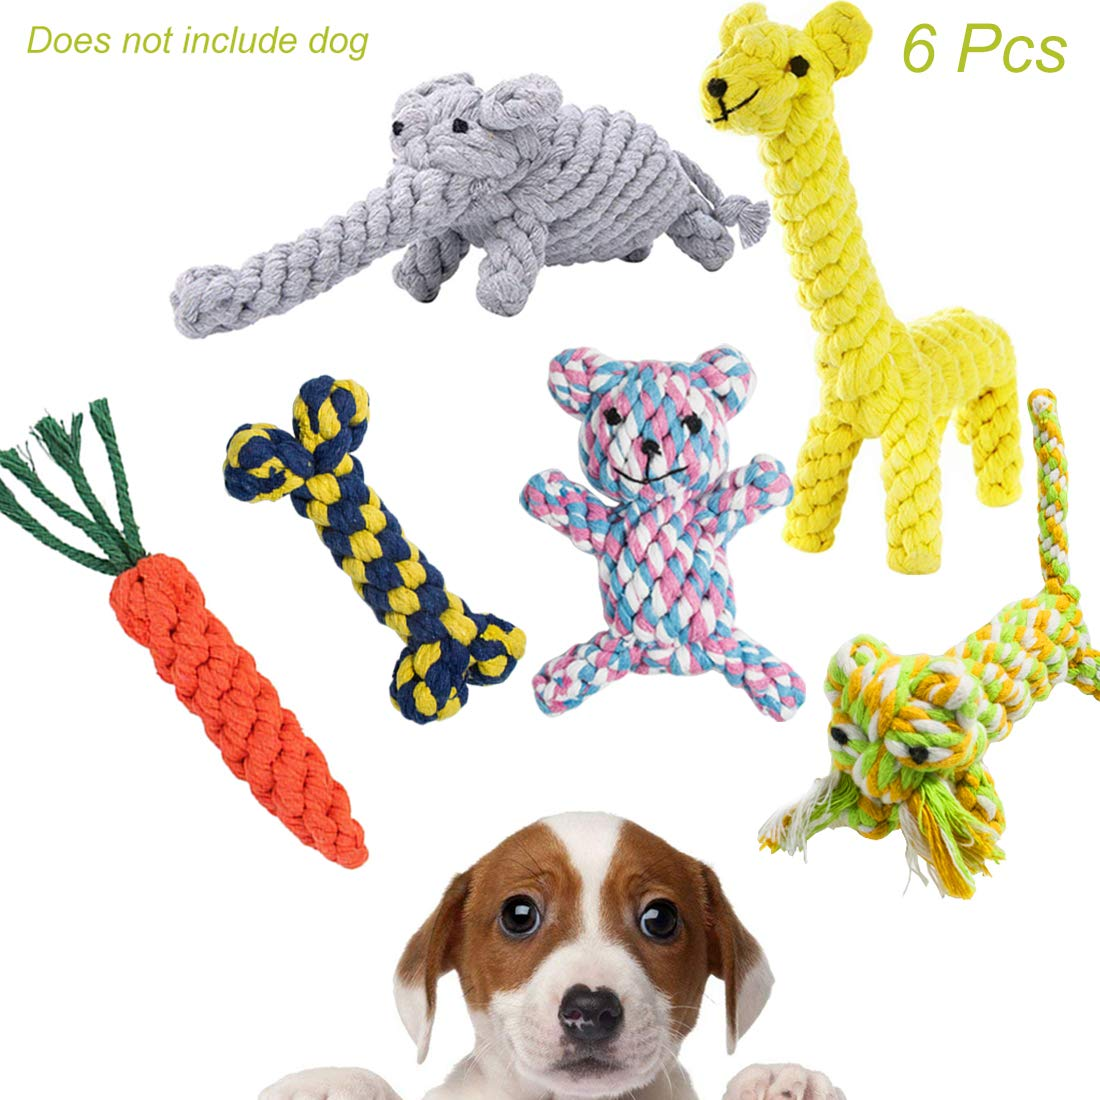 Hatisan 6 Packs Dog Rope Toys with Animal Design, Durable Cotton Chew toys Training toys Toys for Small to Medium Puppy Dogs